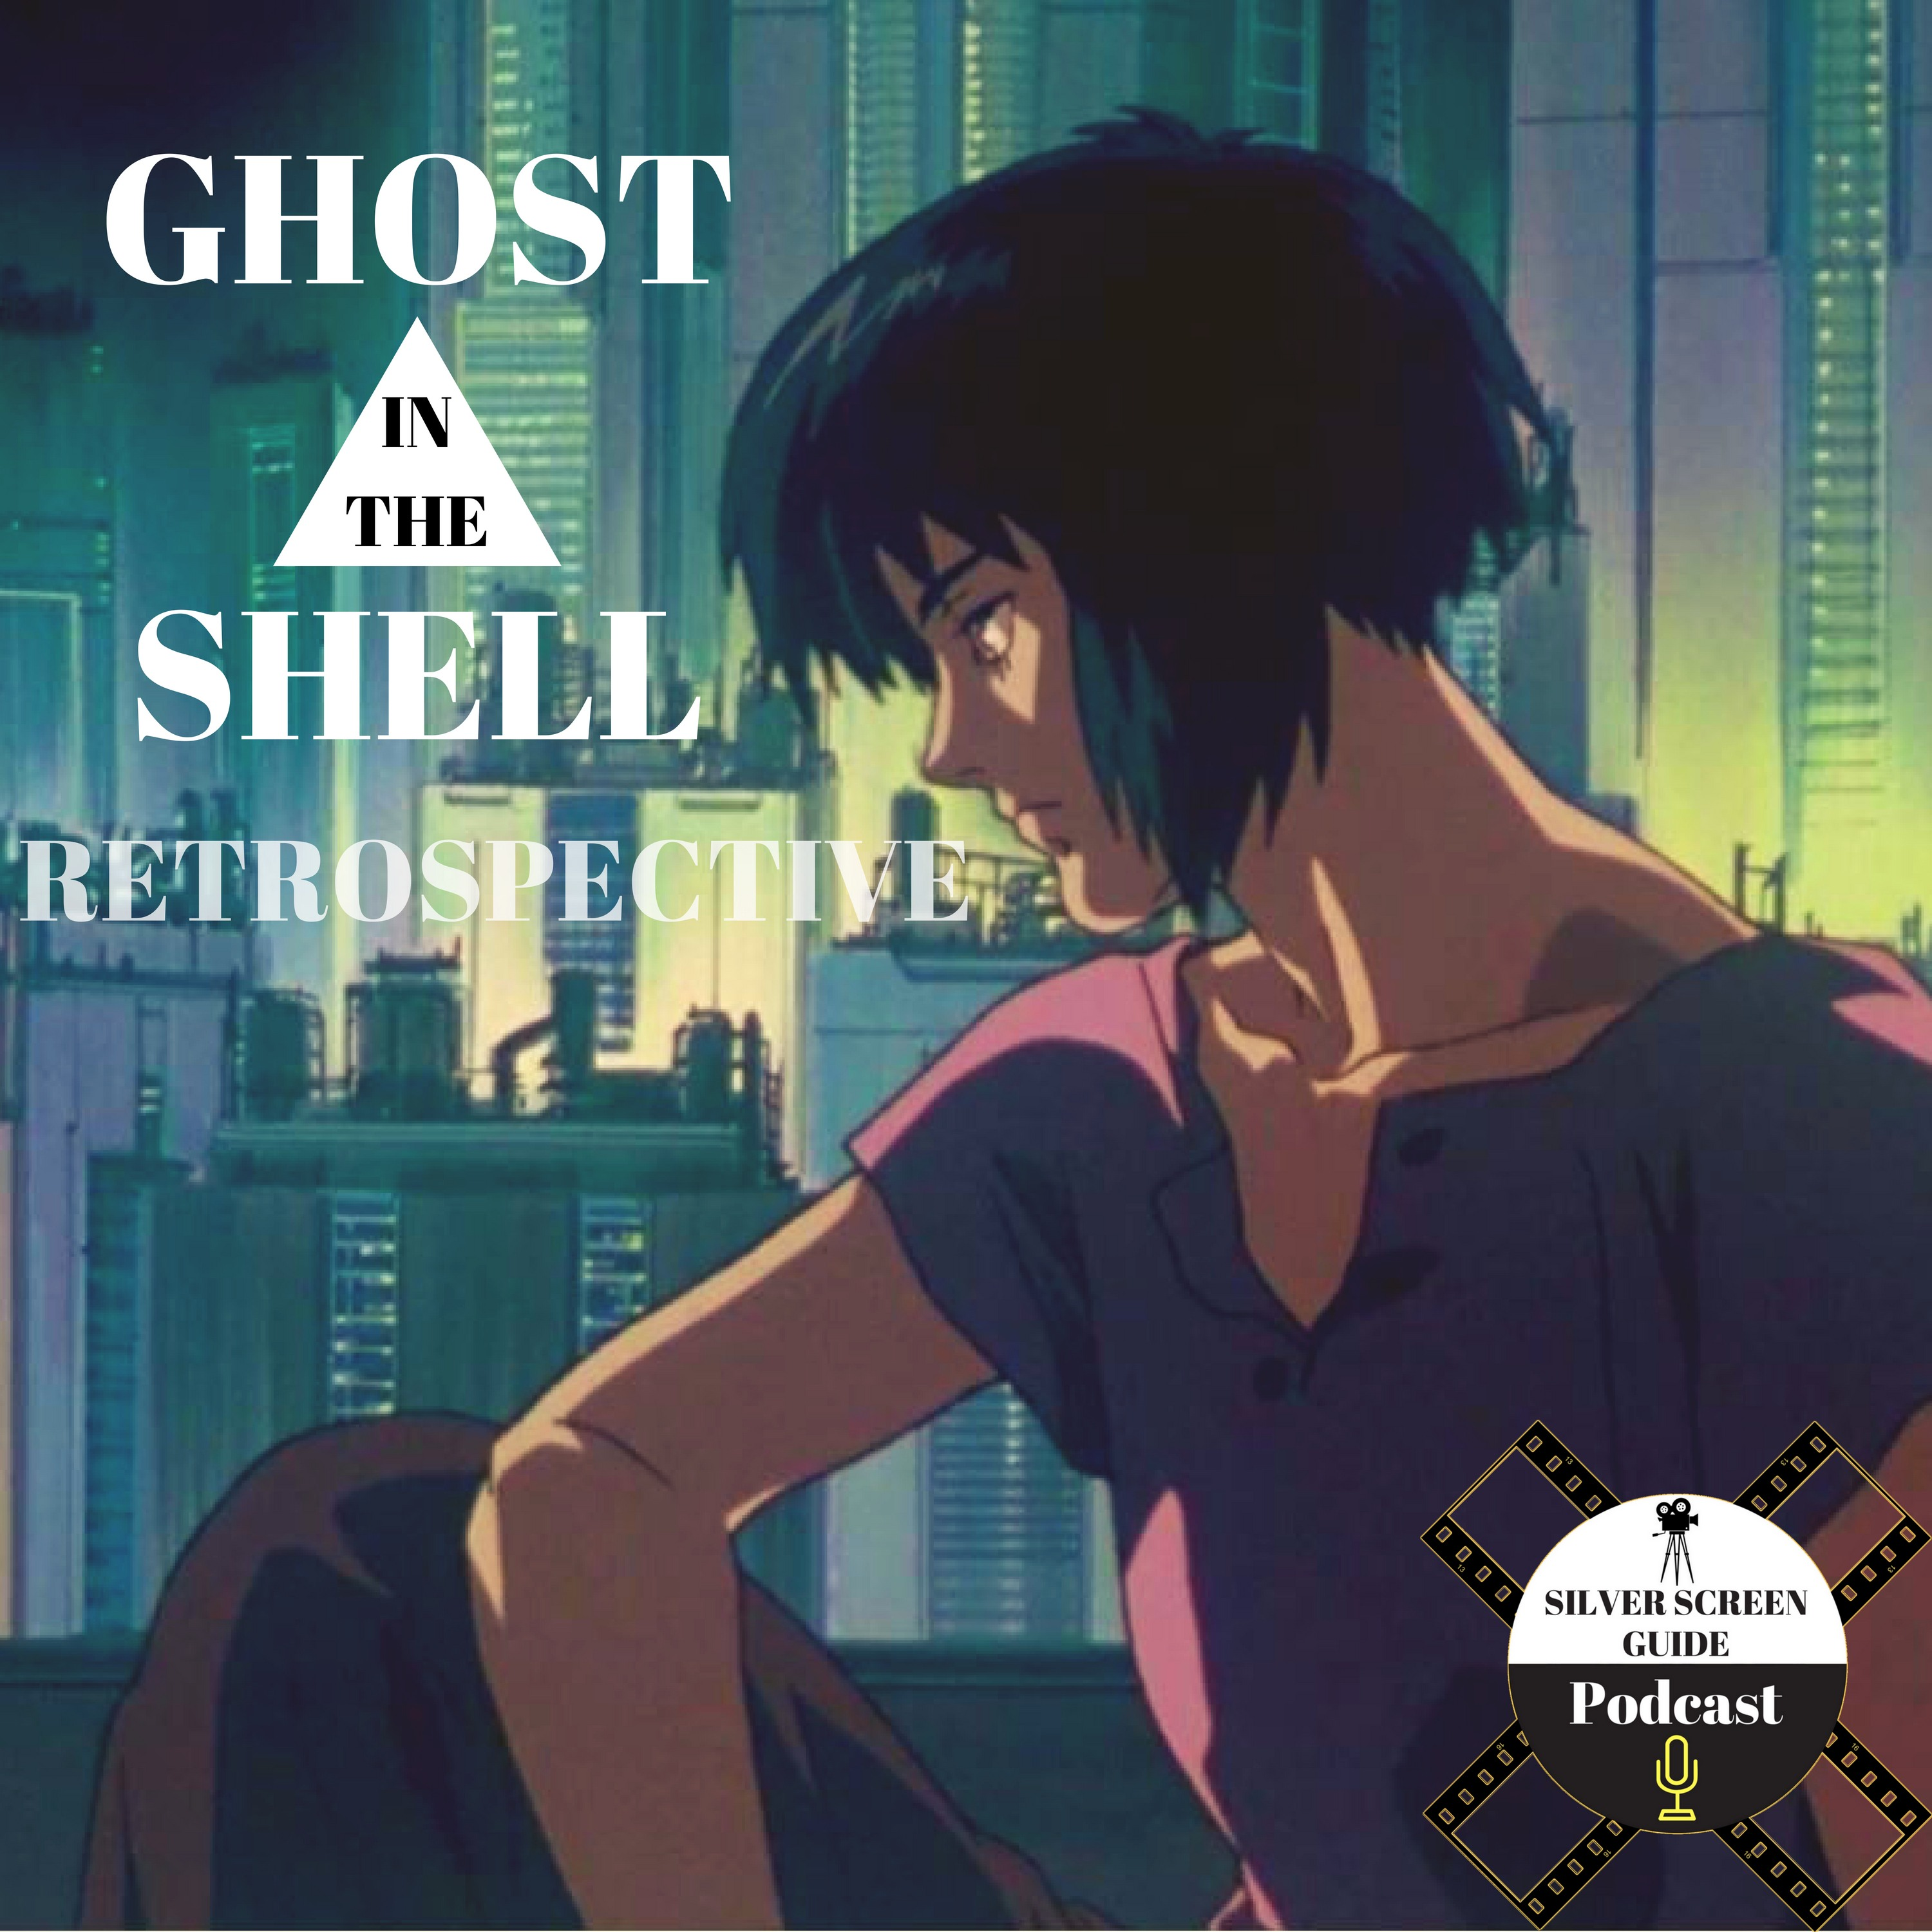 Silver Screen Guide Movie Review Podcast Ghost In The Shell 2 Innocence 2004 Movie Review Free Listening On Podbean App